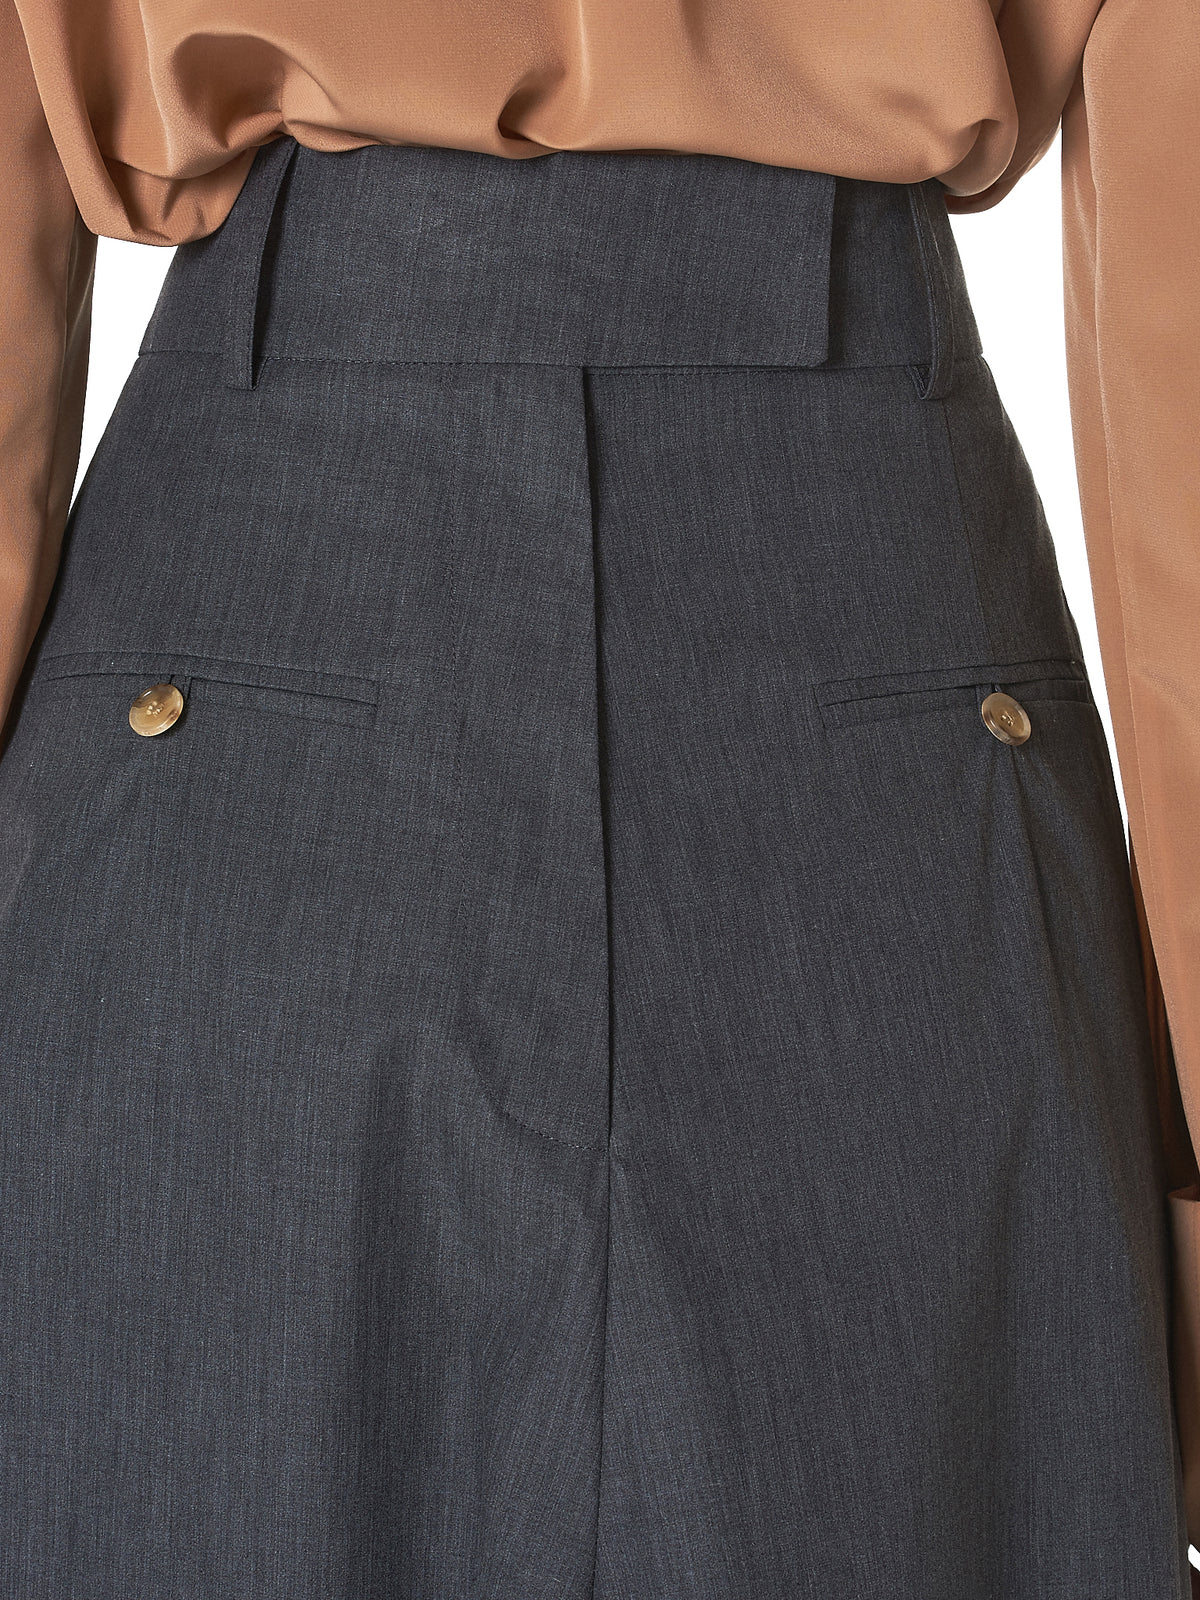 Awake Pant Skirt - Hlorenzo Detail 2